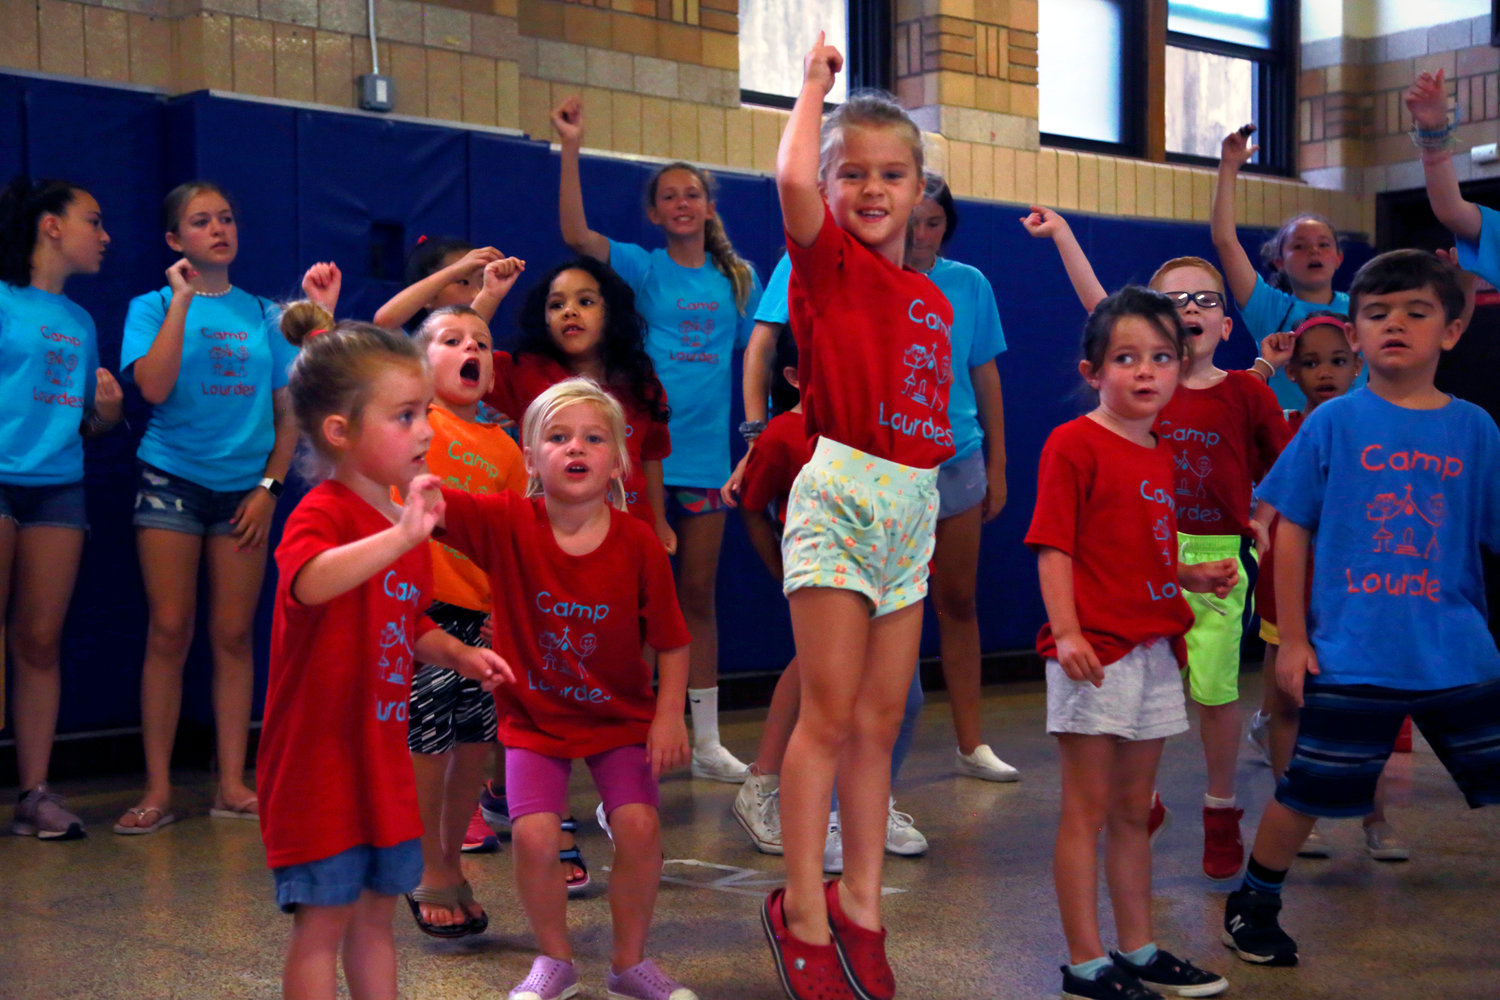 Camp Lourdes, in Malverne, celebrated its 21st anniversary last summer.